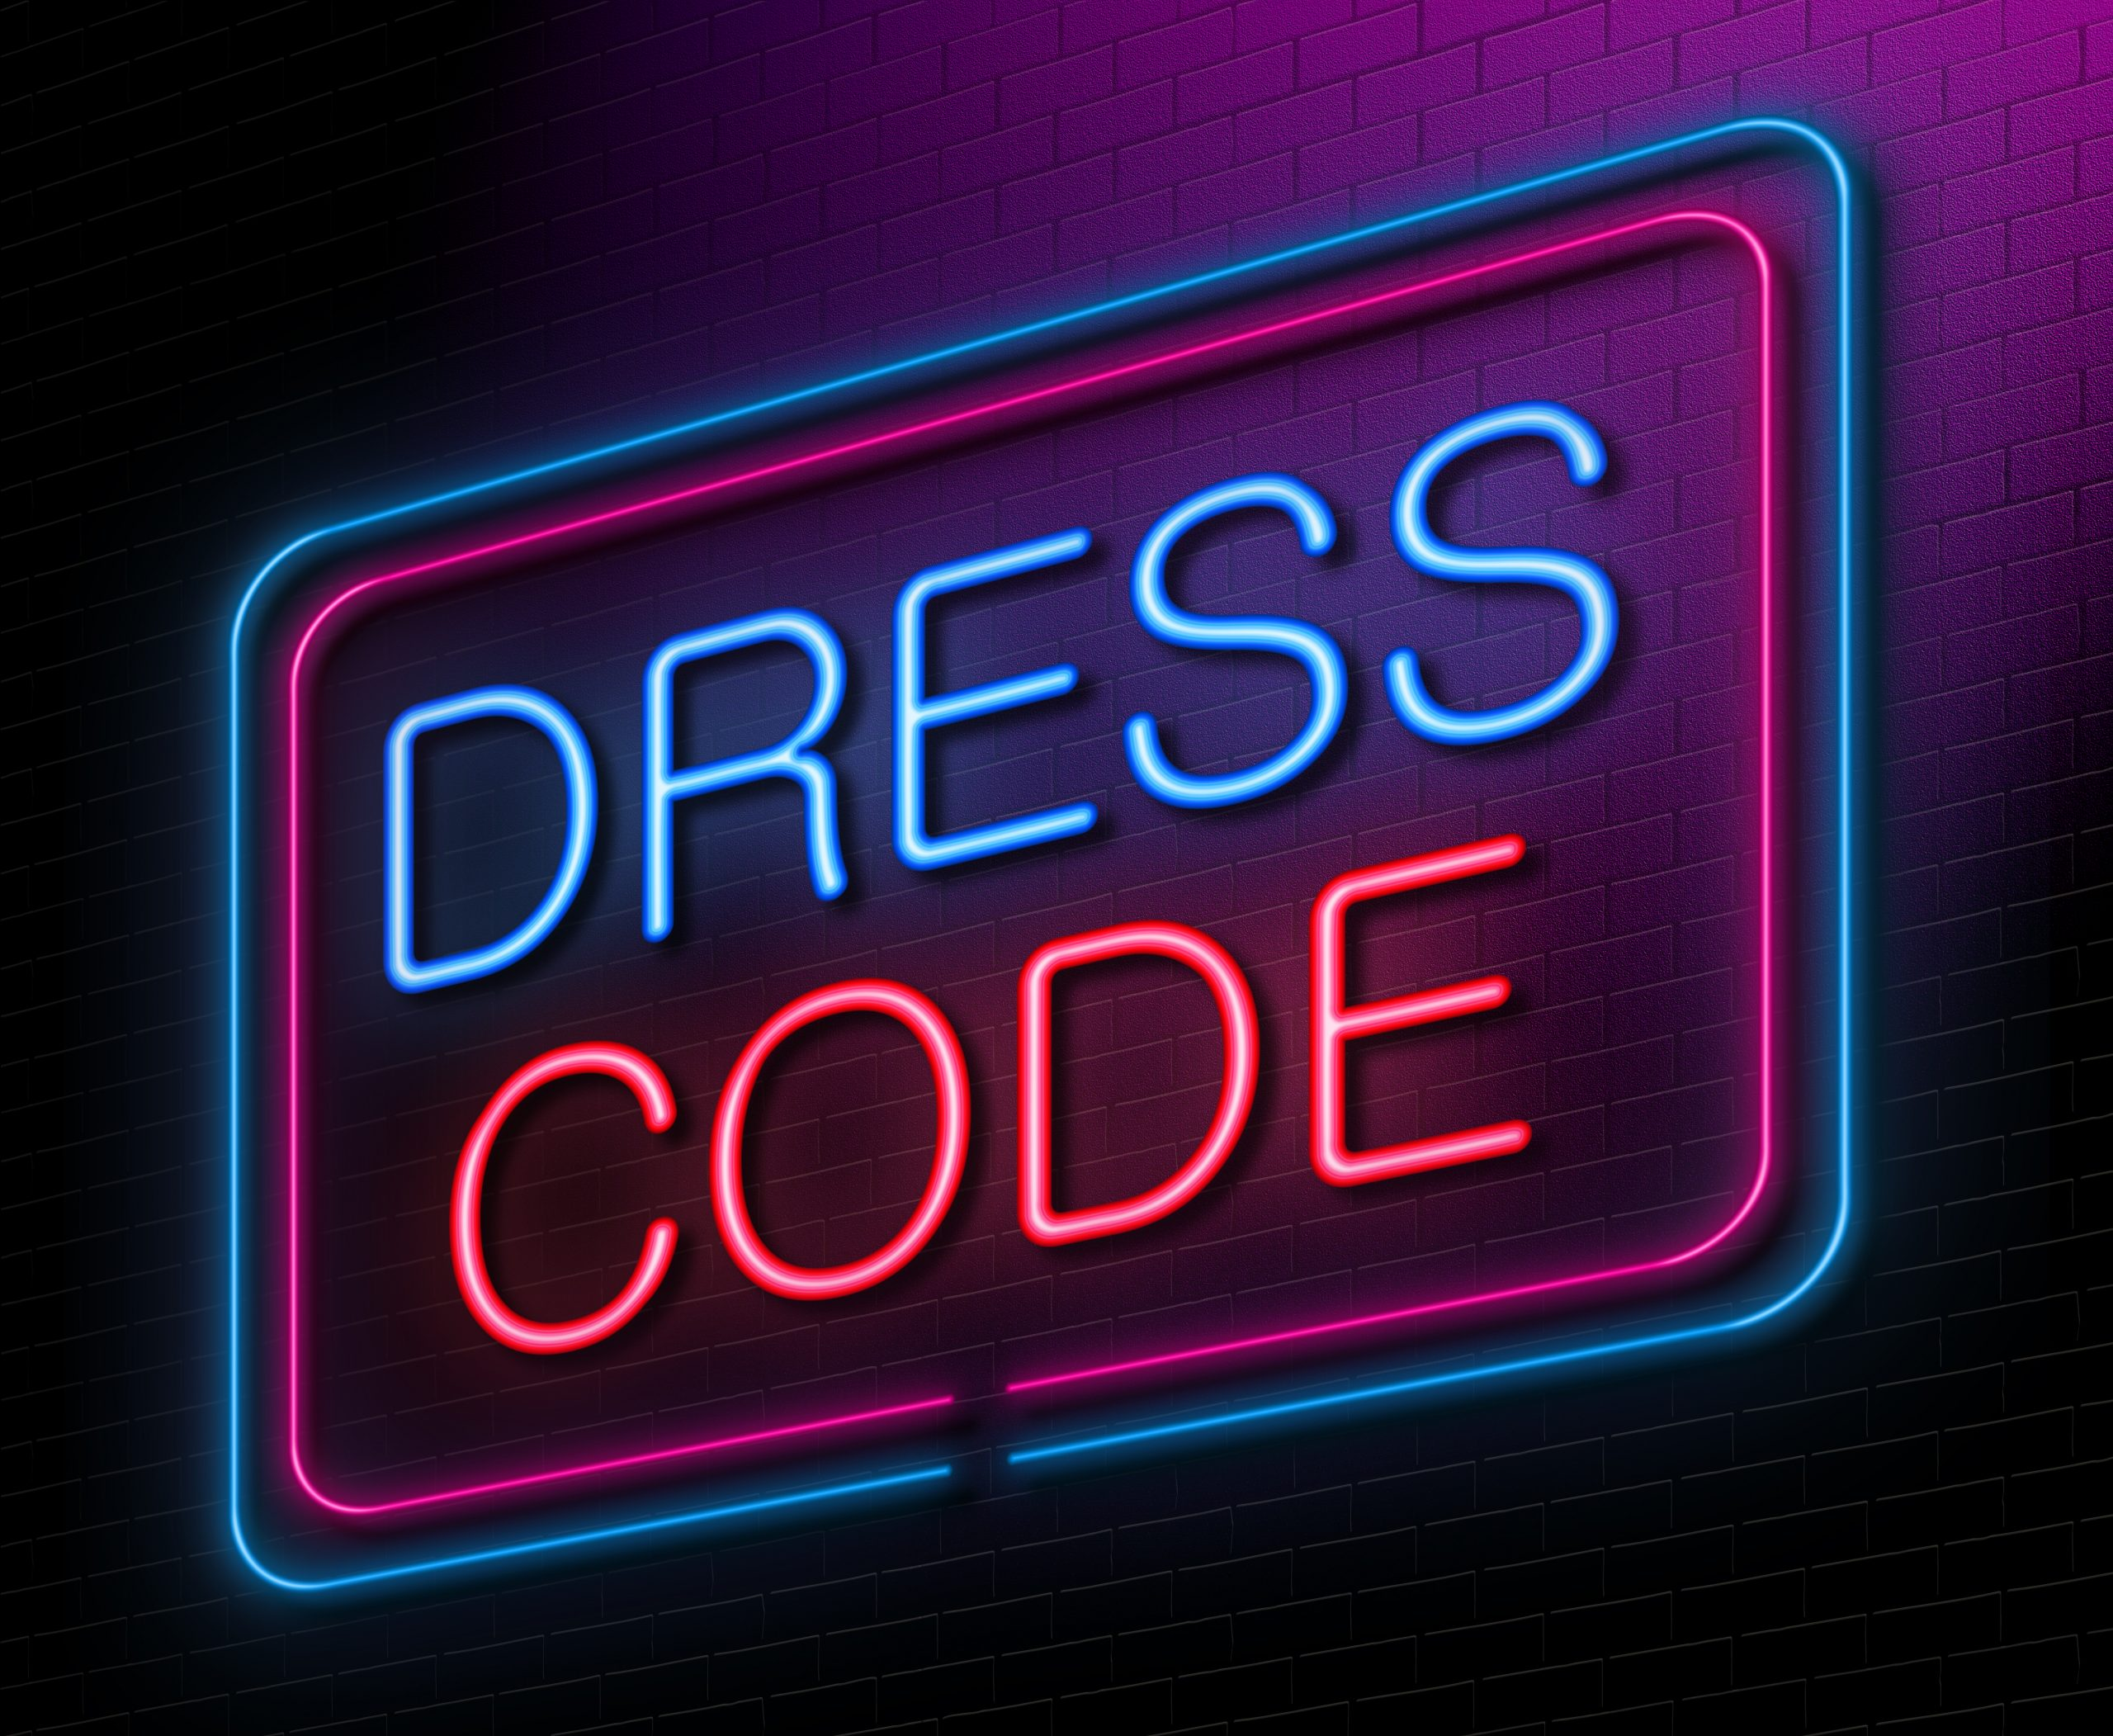 Illustration,Depicting,An,Illuminated,Neon,Sign,With,A,Dress,Code